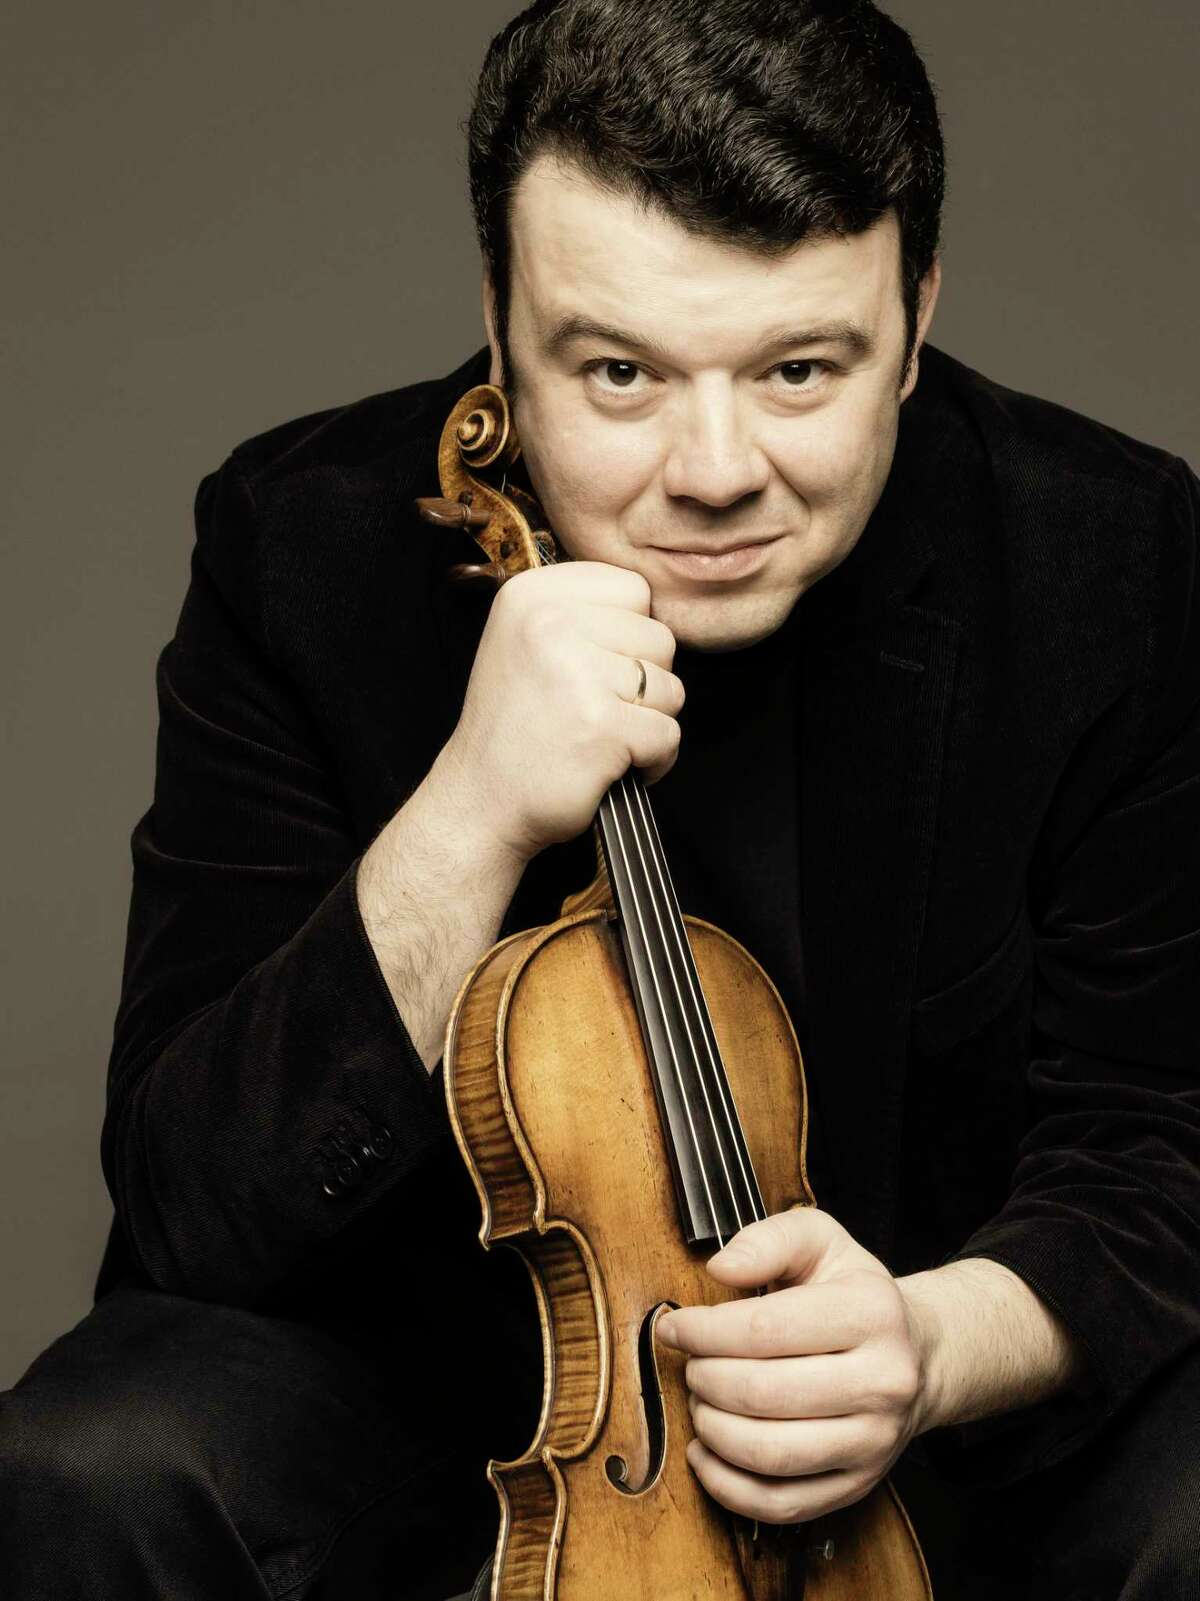 Violinist Vadim Gluzman is one of dozens of classical music artists enlisted by conductor Sebastian Lang-Lessing for VirtuMasterClass.